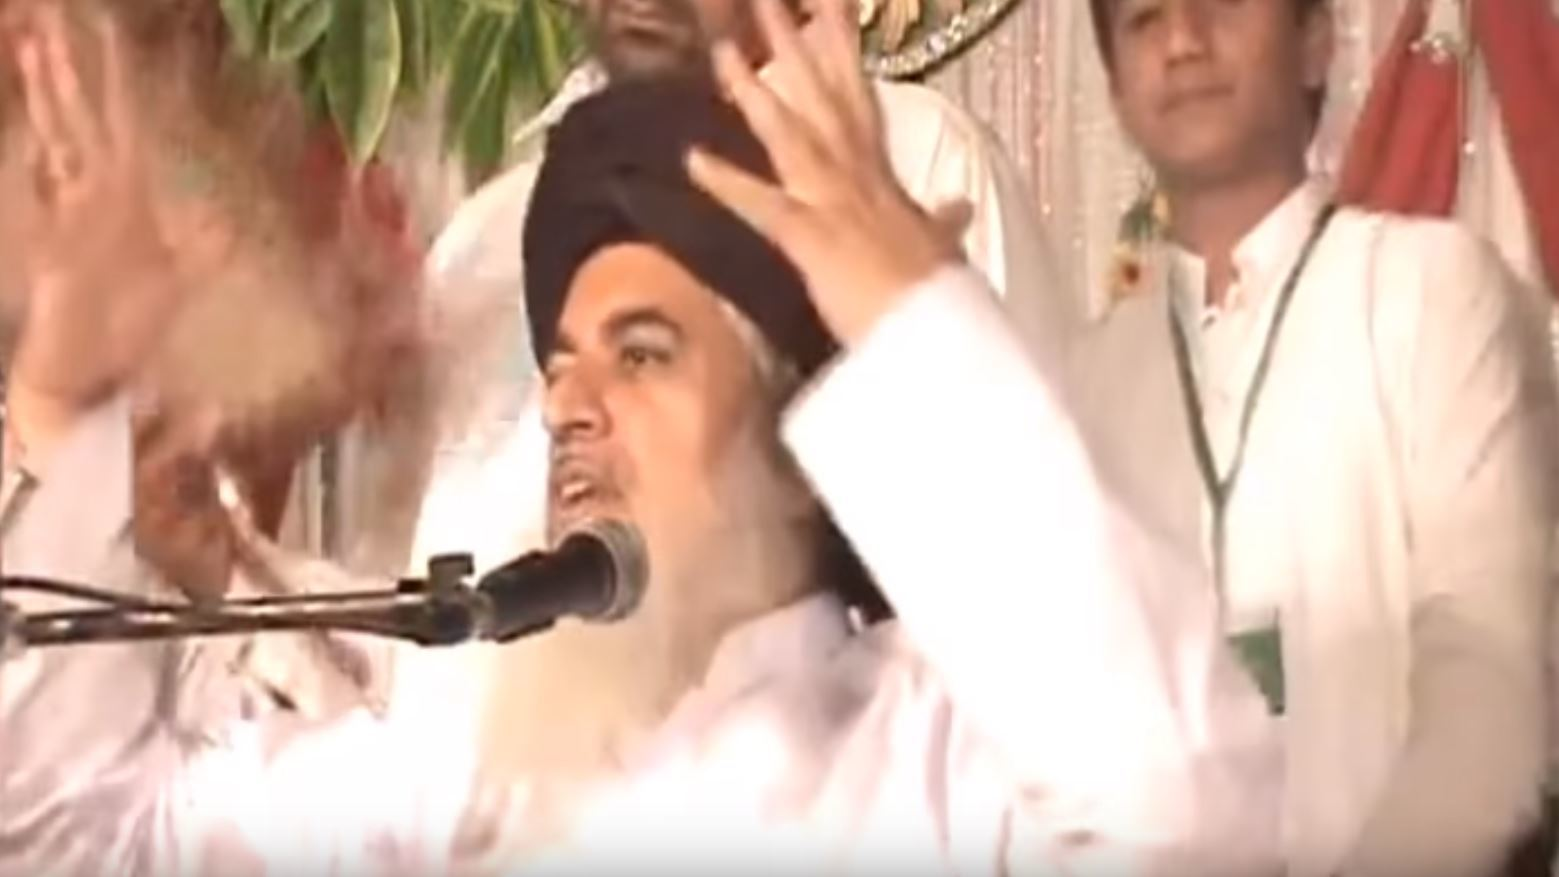 Muslim Cleric, Allama Khadim Hussain Rizvi, claiming to have spoken to Tanveer Ahmed who murdered Asad Shah who ran a Glasgow sweet shop